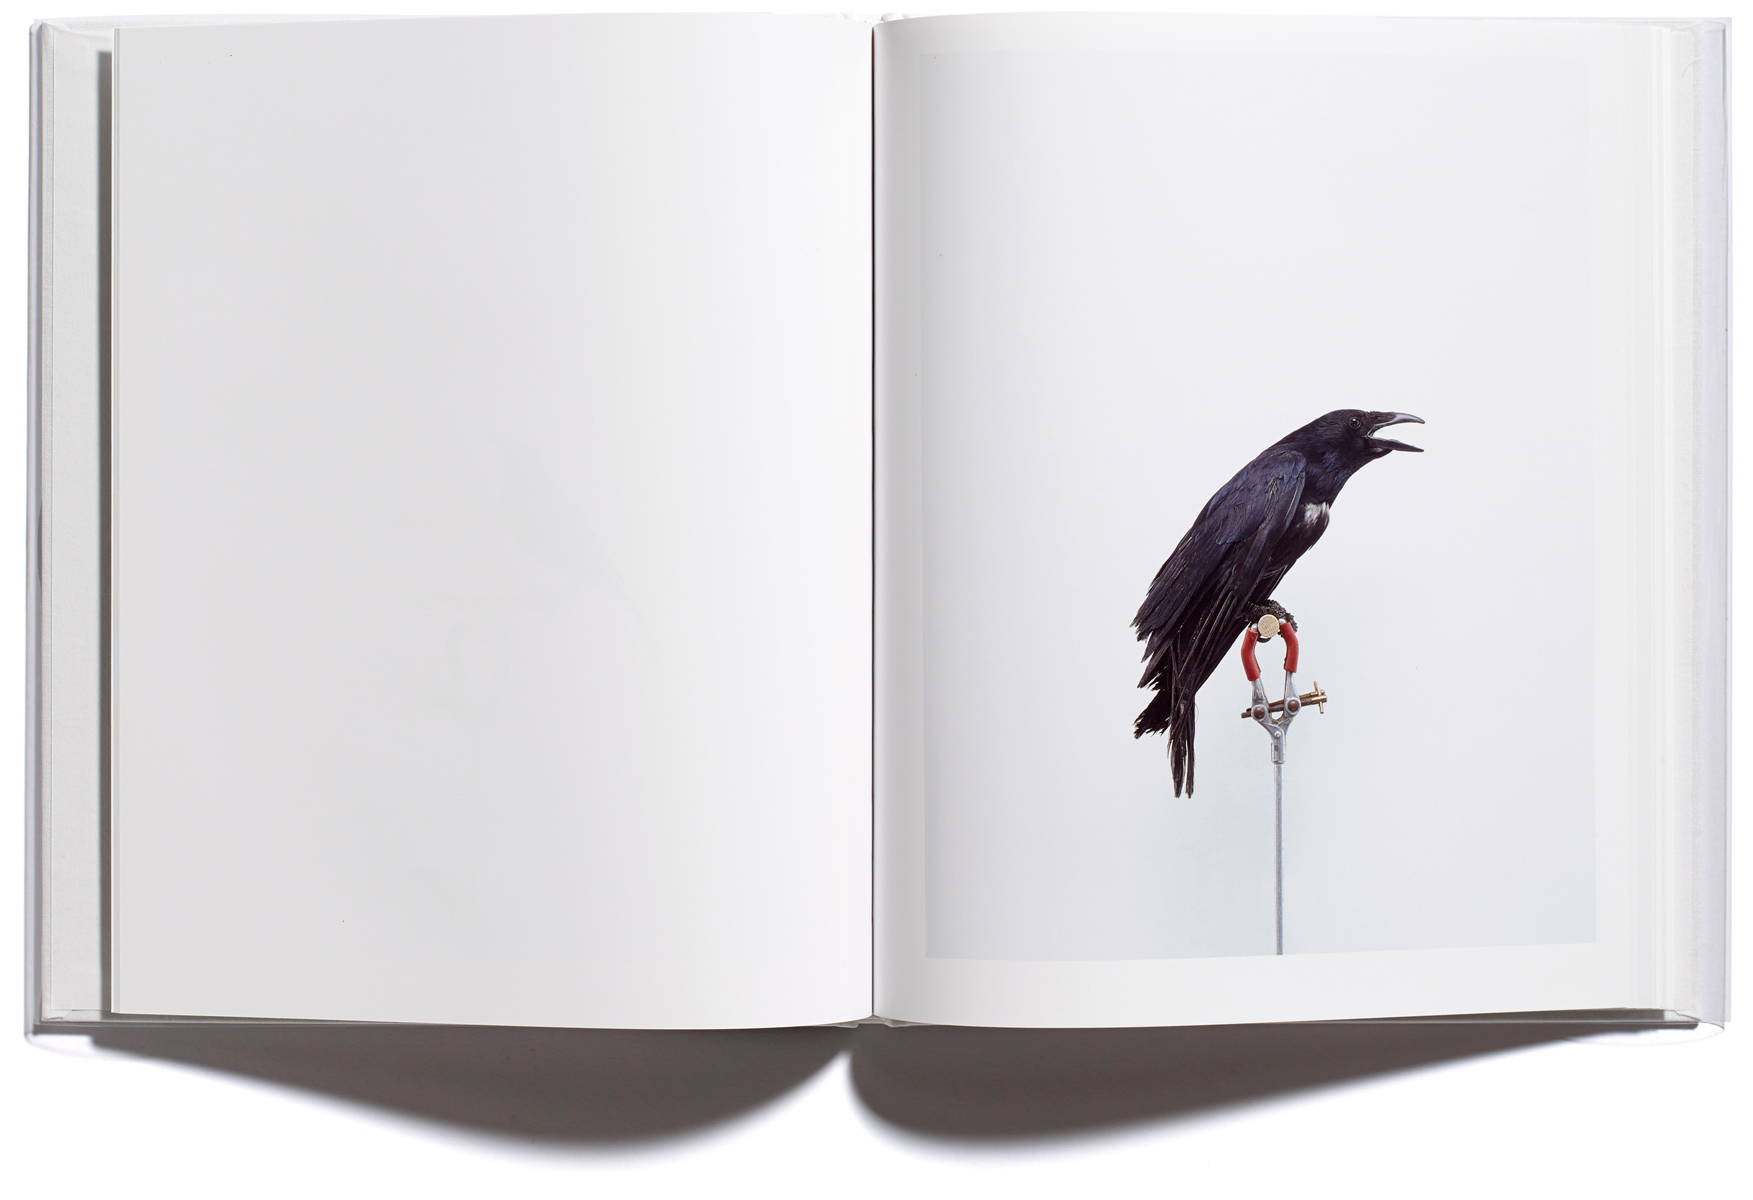 Browns Editions, Jonathan Ellery, London Garden Birds, designed by Browns Design book